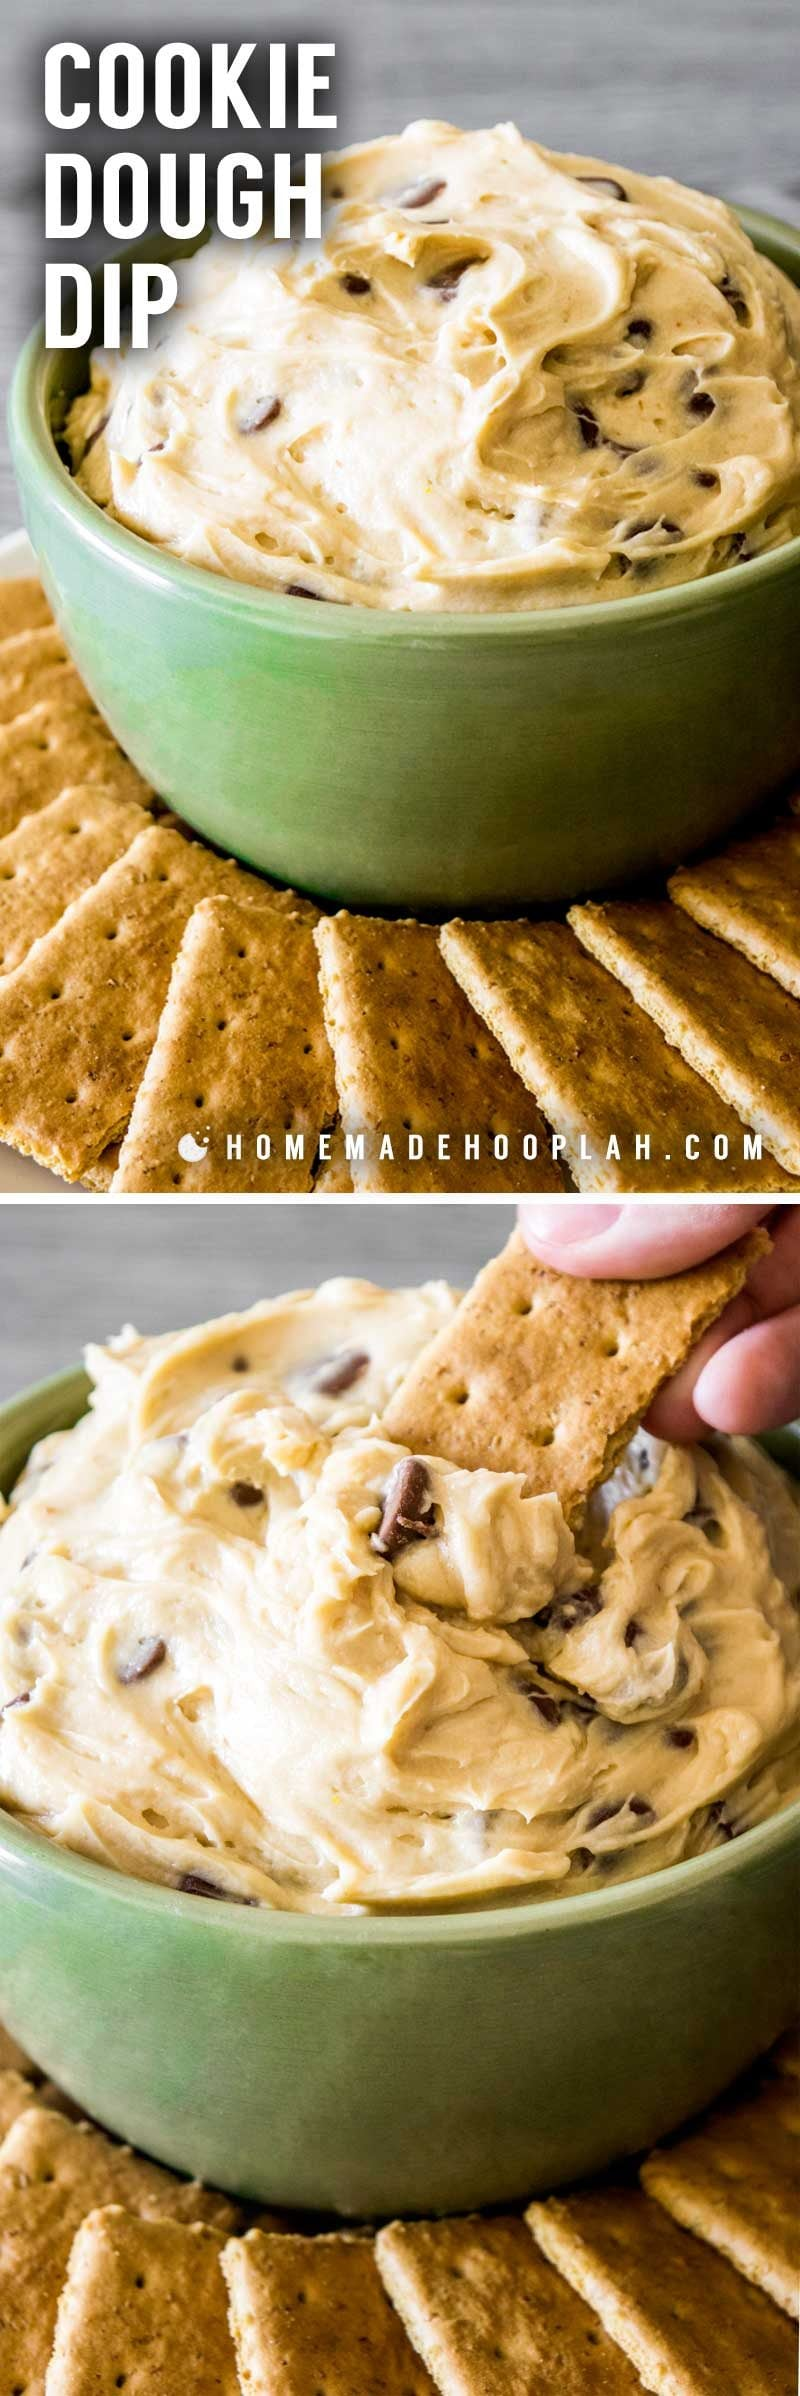 Chocolate chip cookie dough dip recipe.